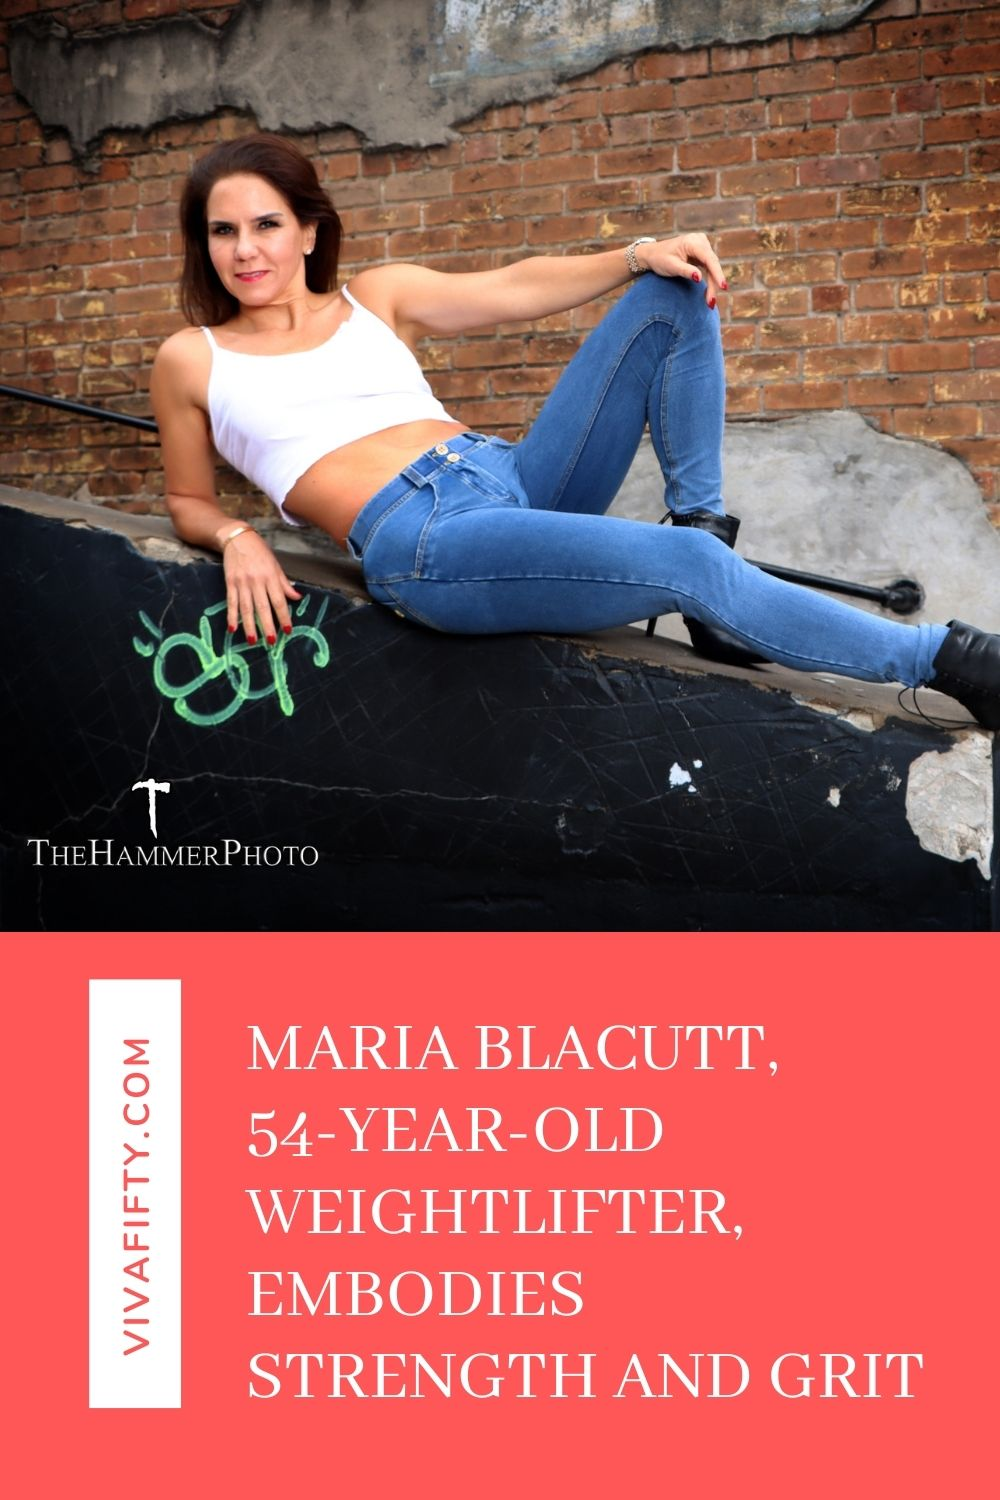 If you are in midlife and want to lift weights, this midlife weightlifter will inspire you to stay the course.